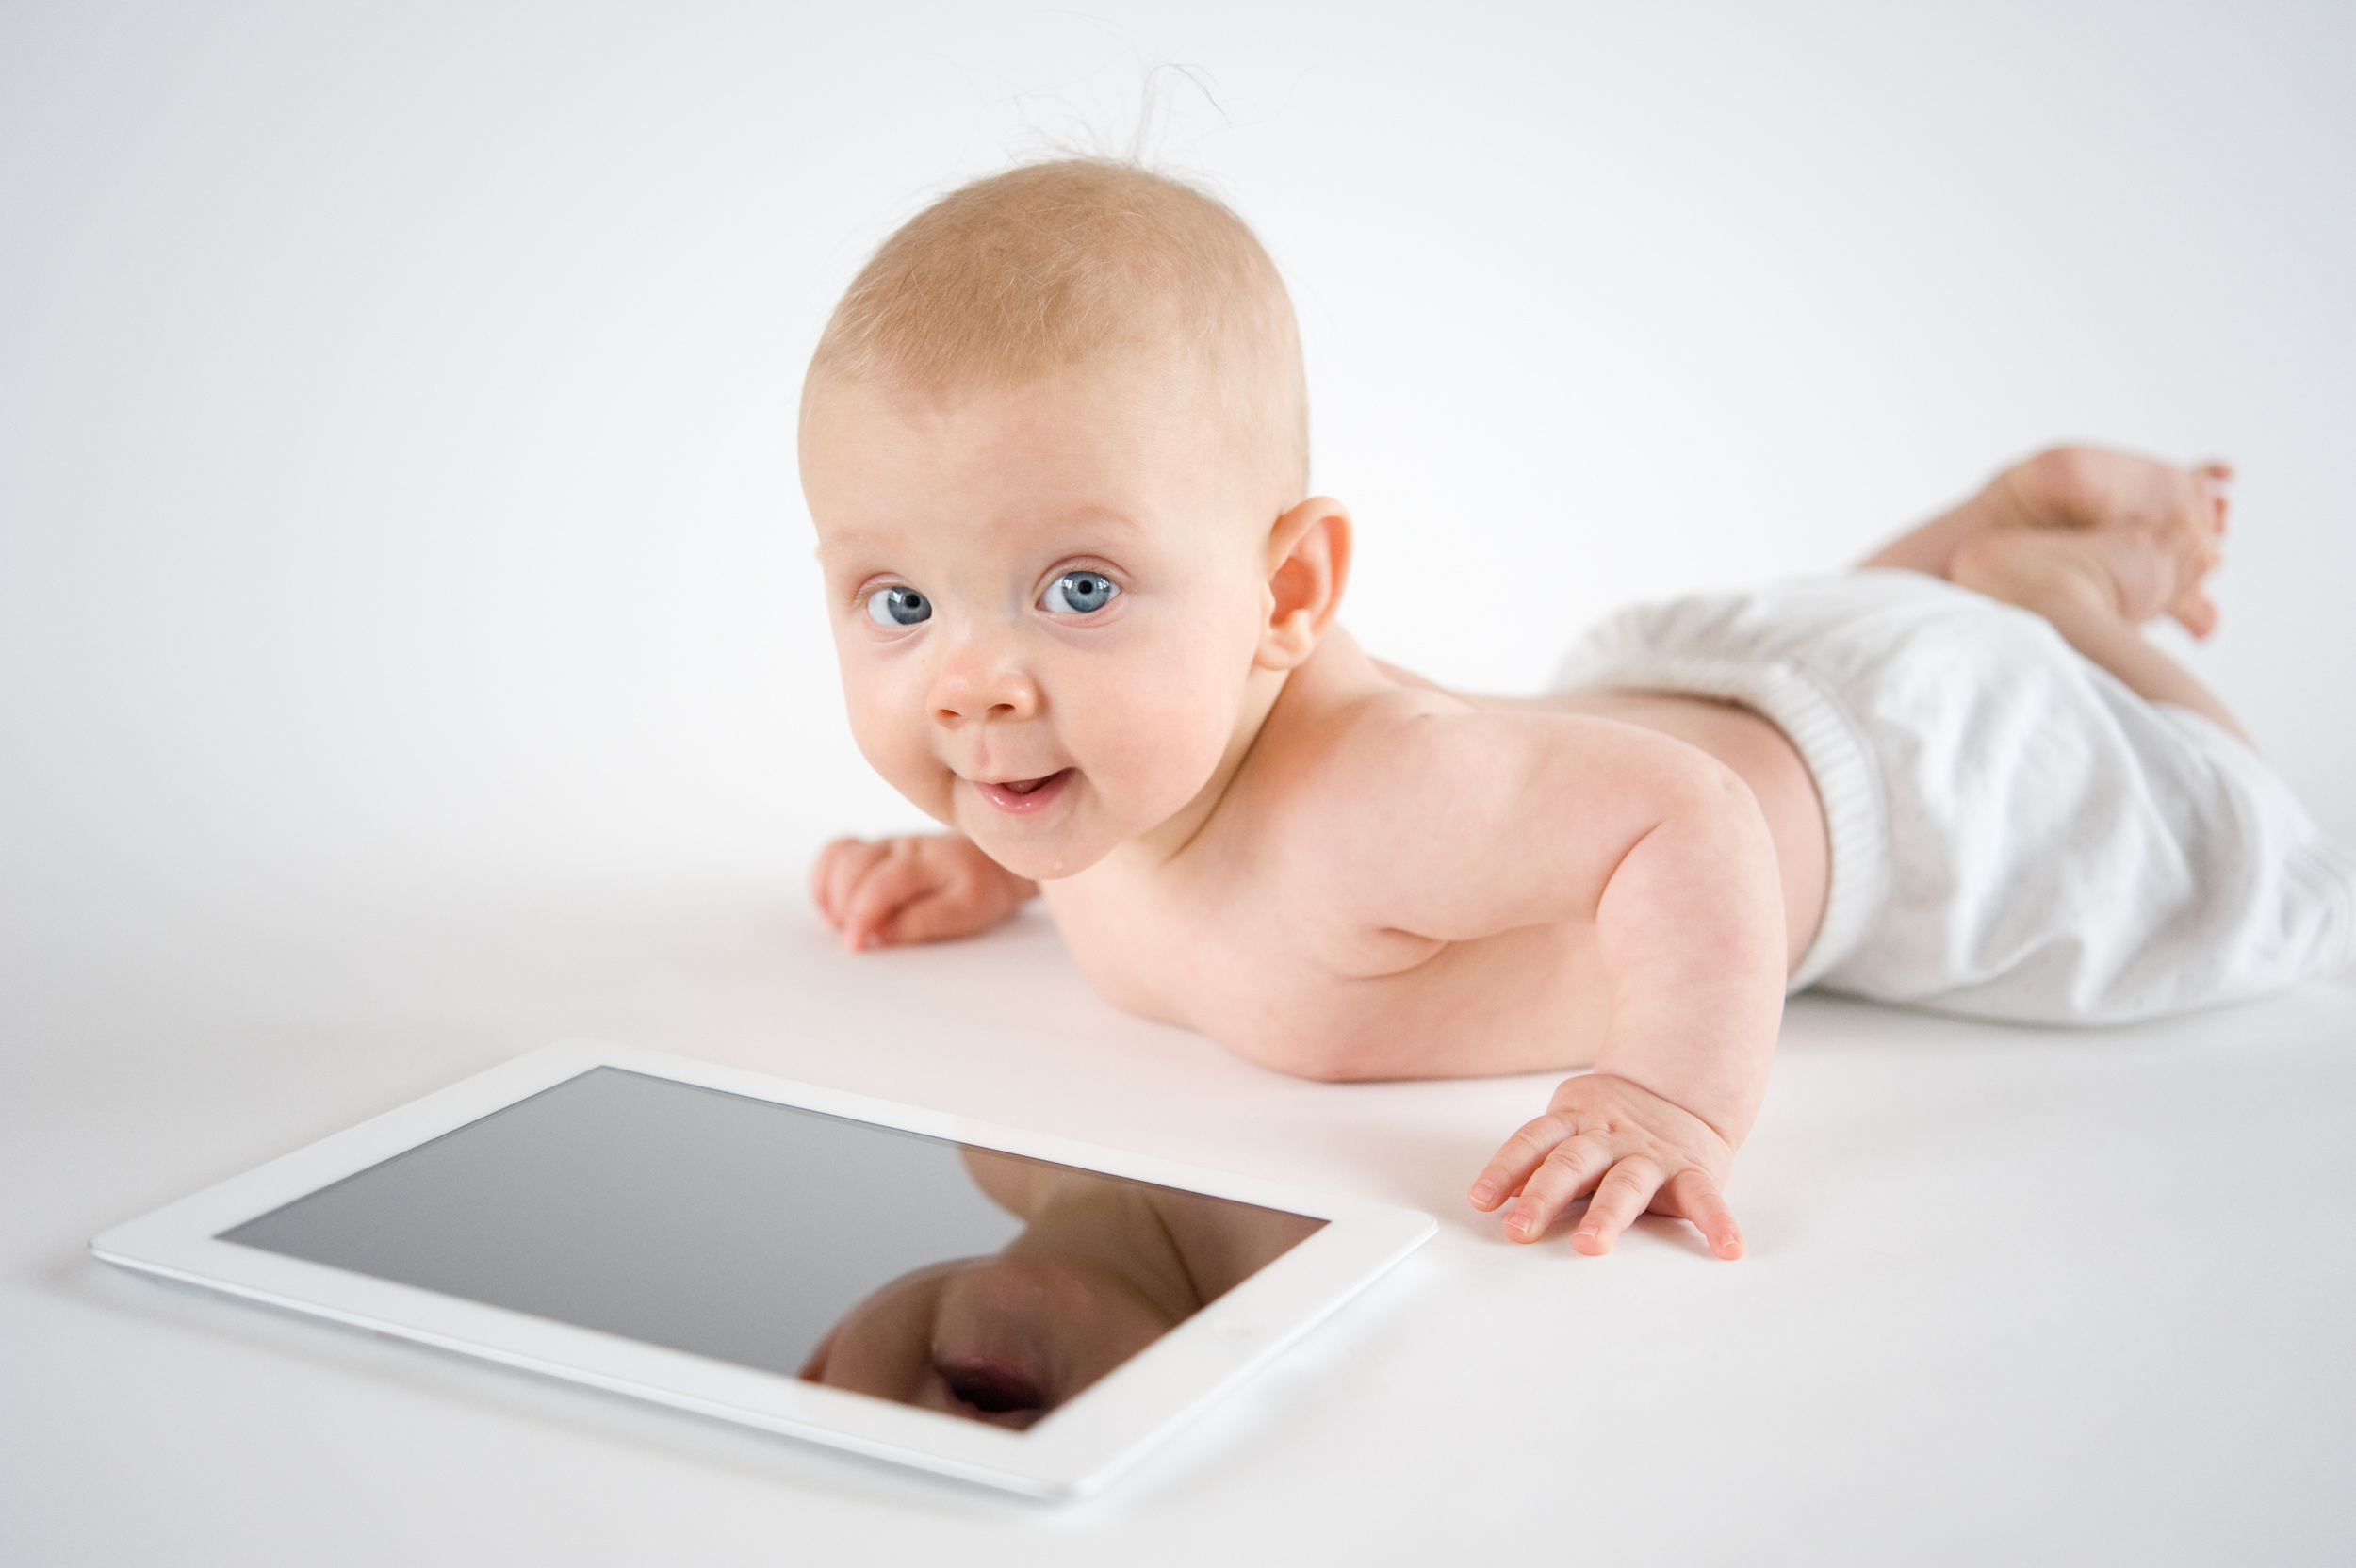 Infant with Ipad screen